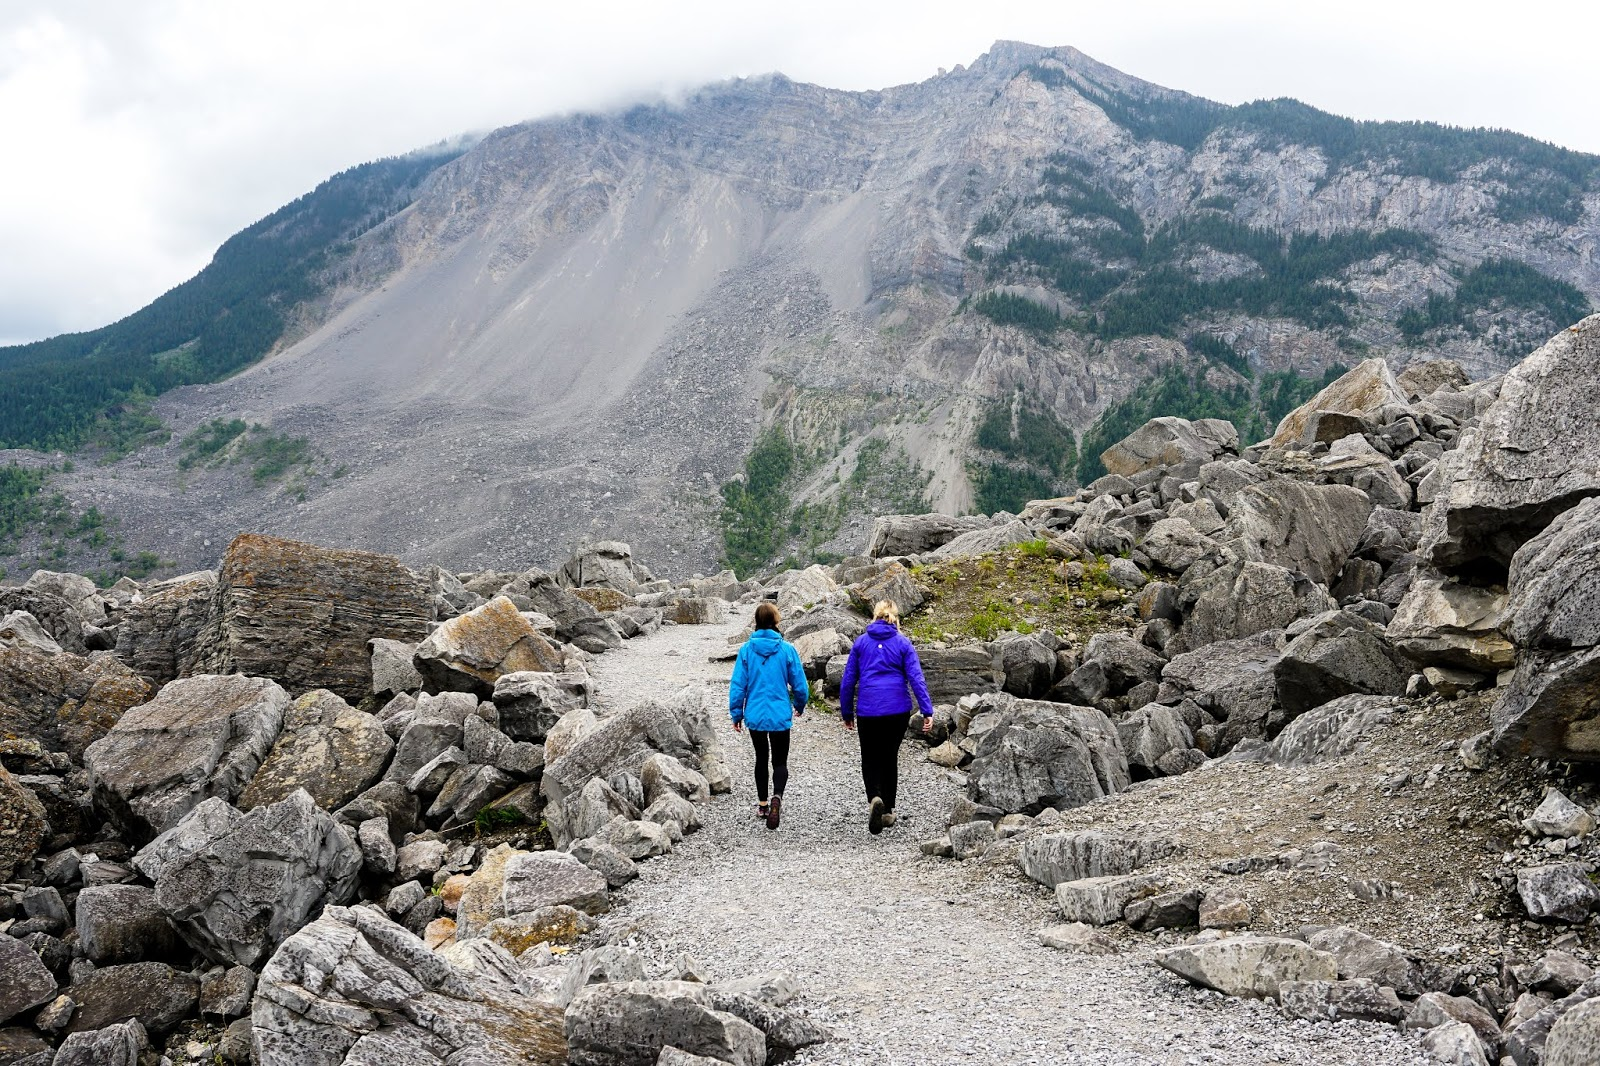 Frank Slide Interpretive Trail